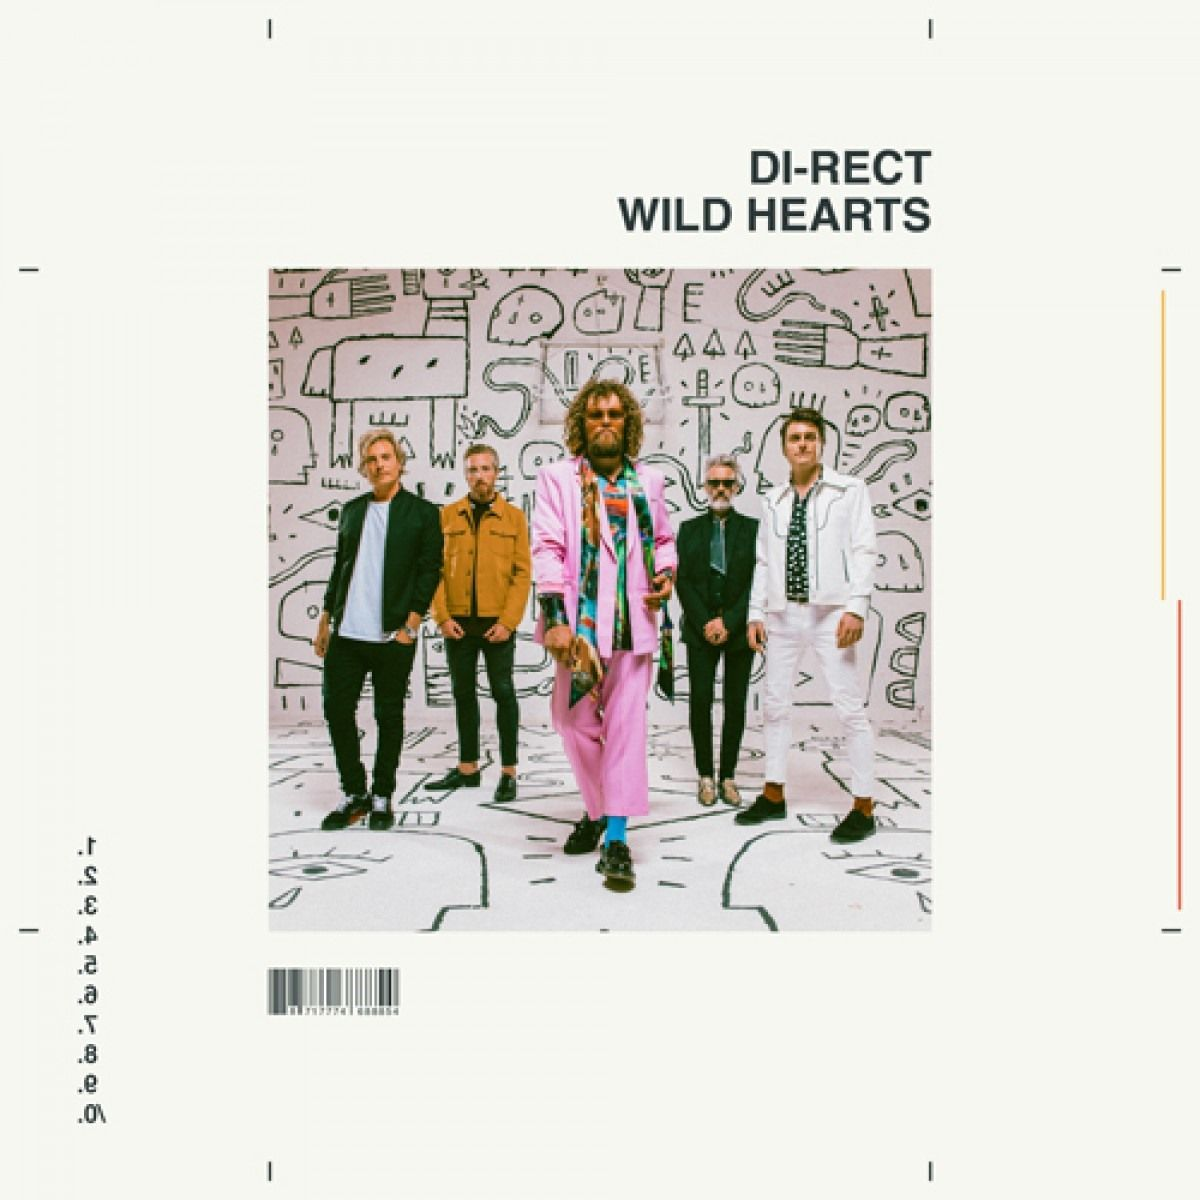 Di-rect - Wild Hearts album cover